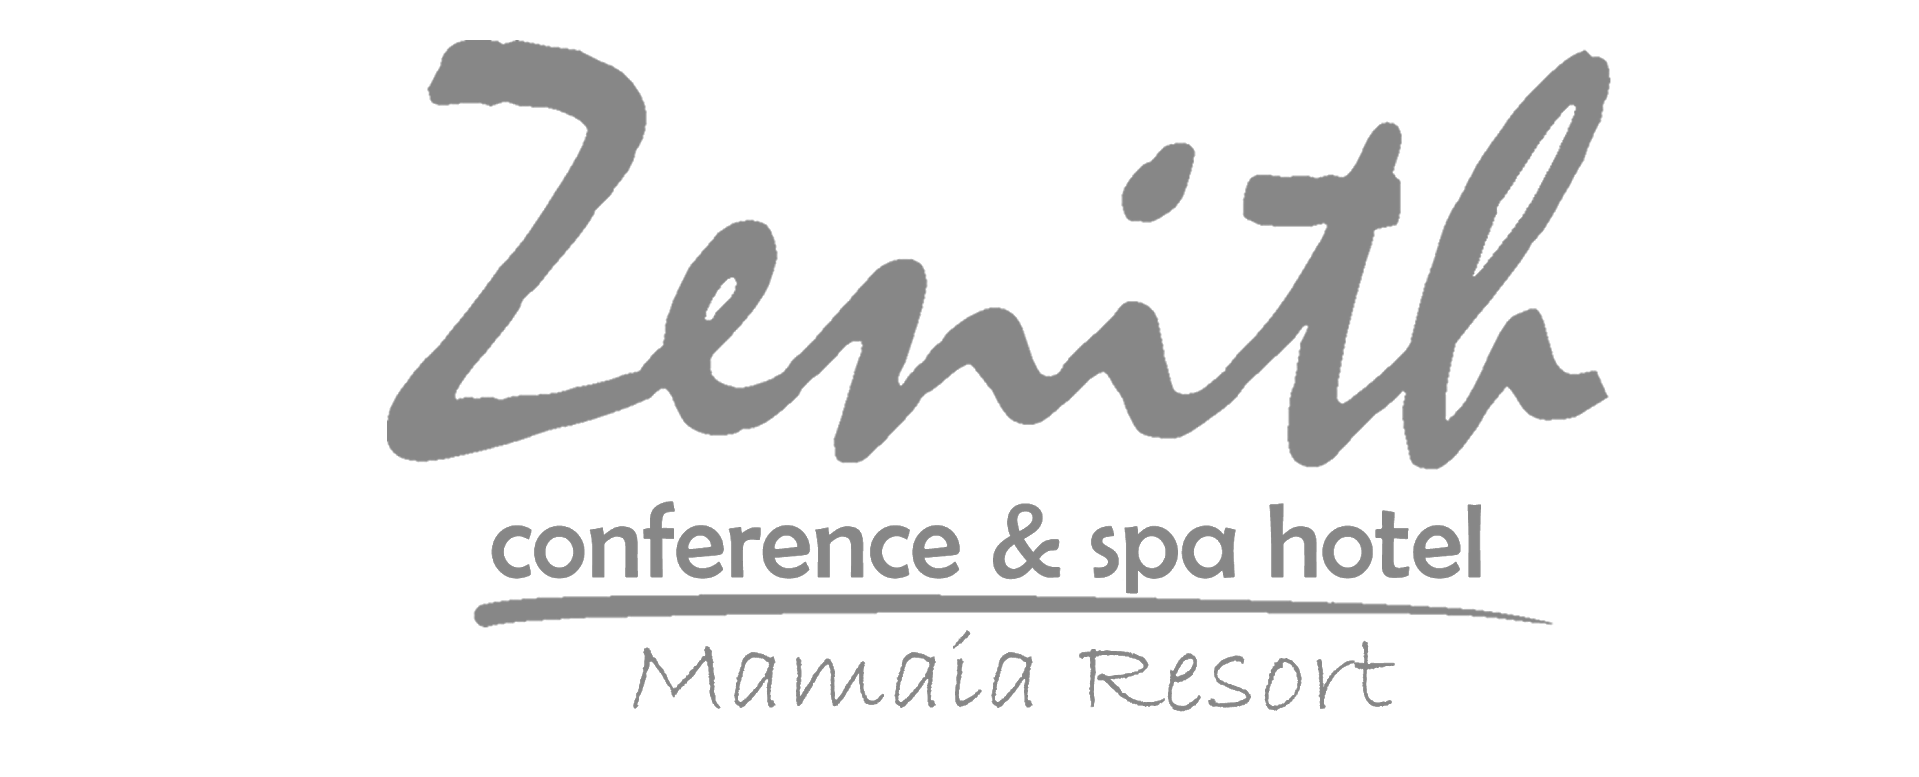 Zenith Hotel Conference & Spa